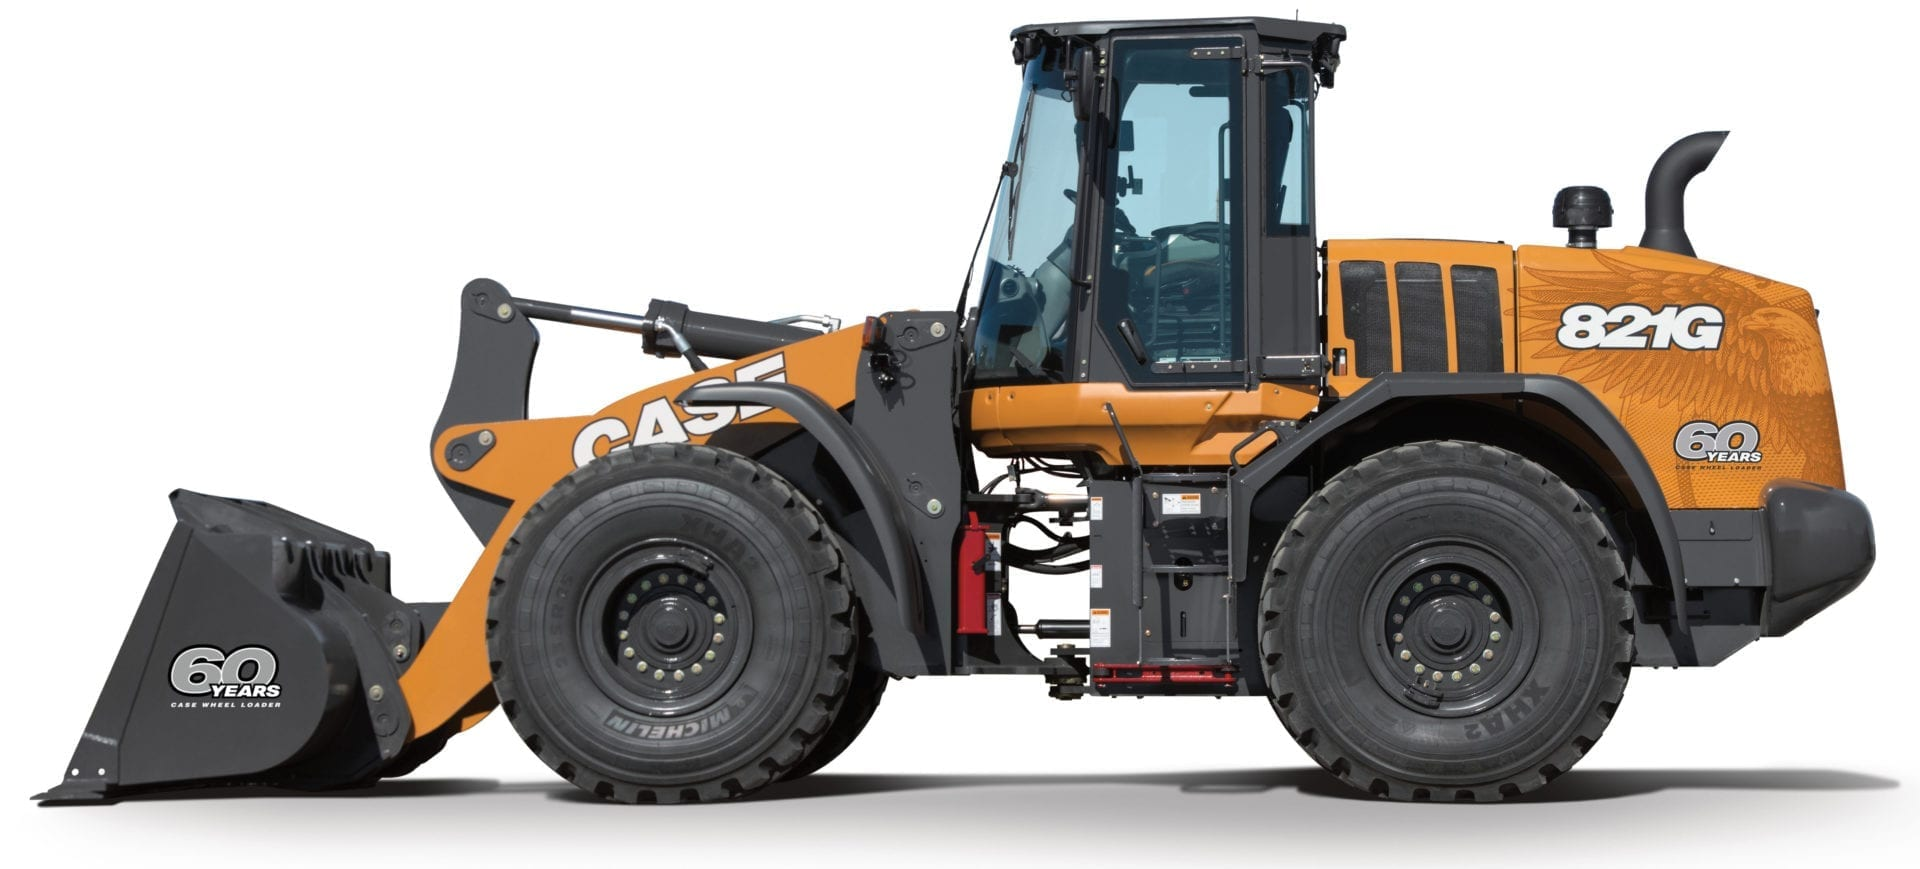 CASE celebrates 60 years of wheel loader manufacturing